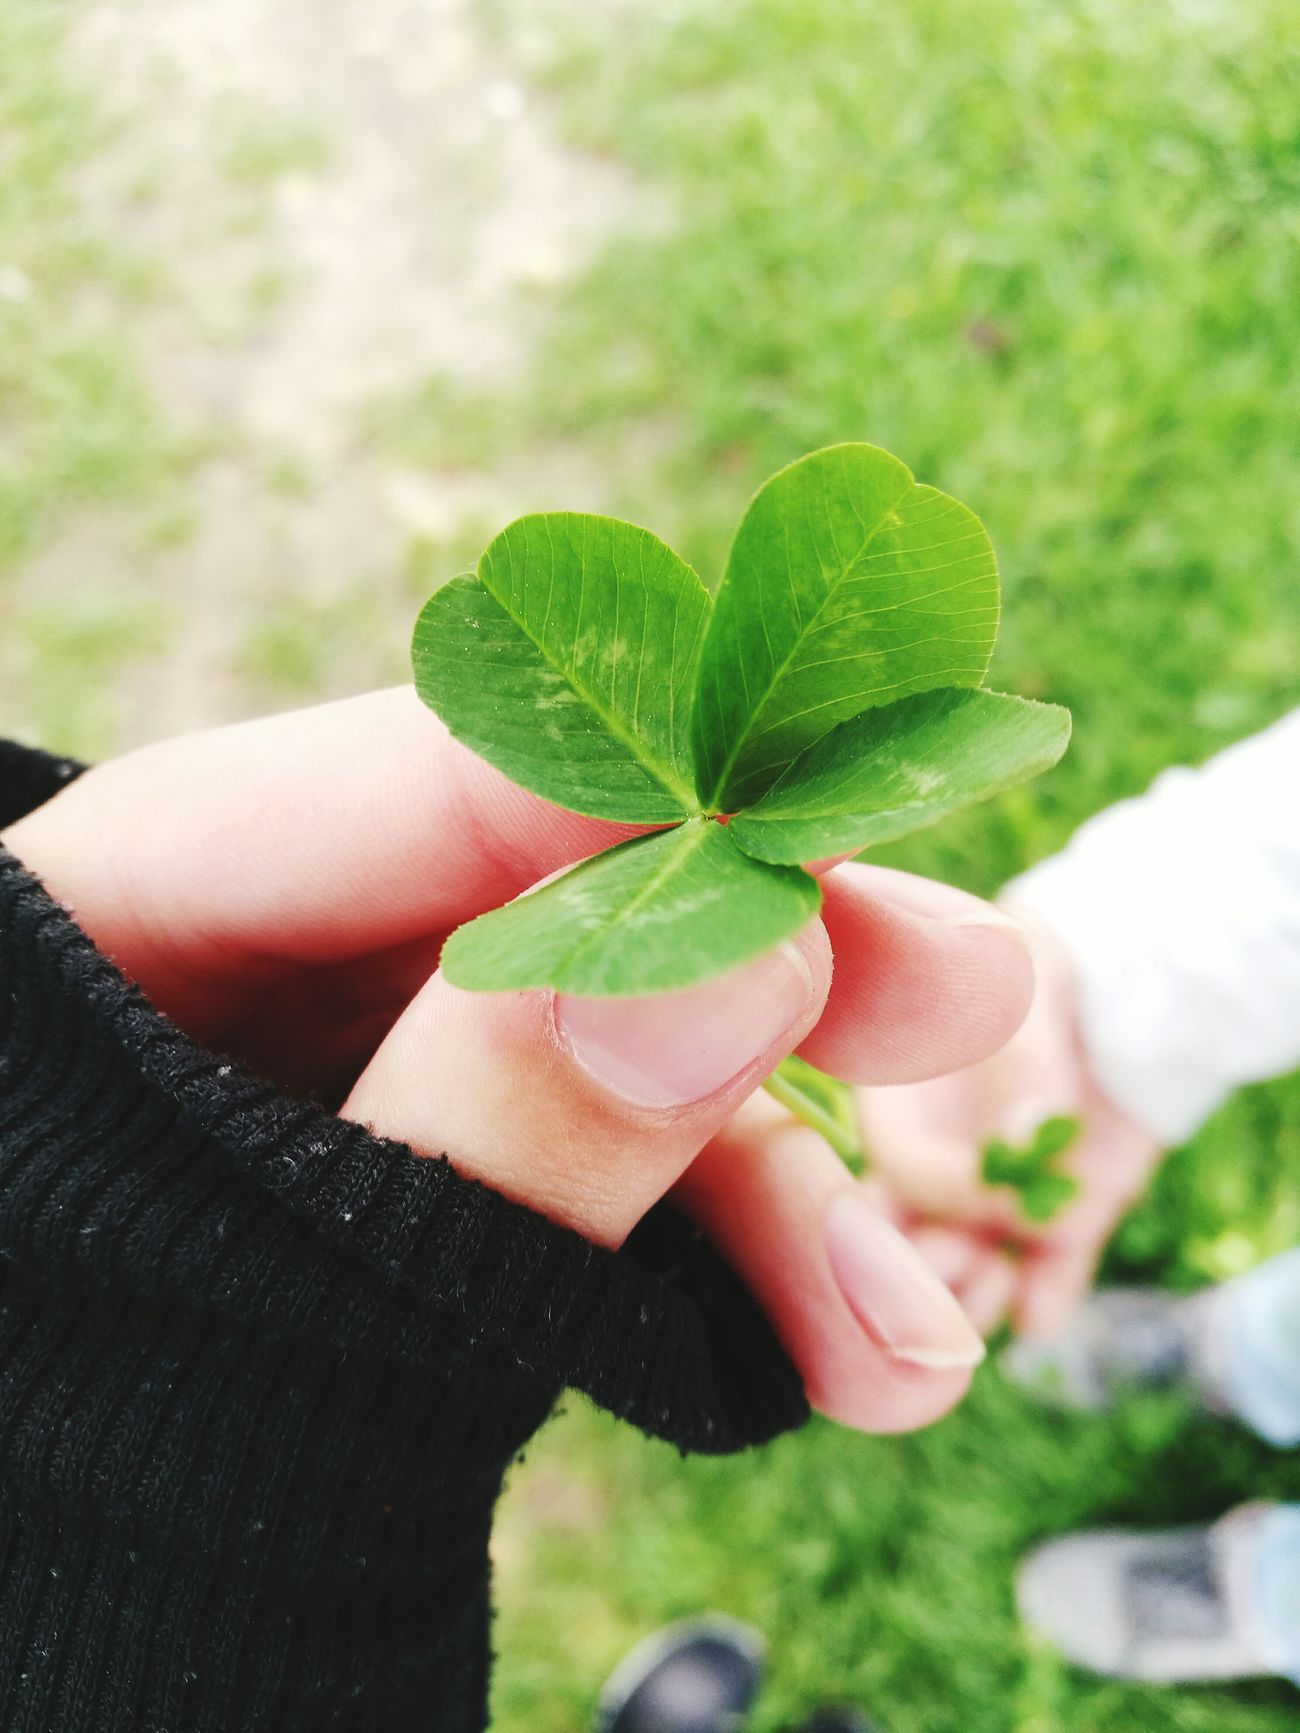 Human Body Part Human Hand Holding Human Finger One Person Hand Leaf Close-up People Personal Perspective Adult Focus On Foreground Nature Outdoors Green Color Lifestyles Body Part Plant One Woman Only Women 4 4leaf 4leafclover